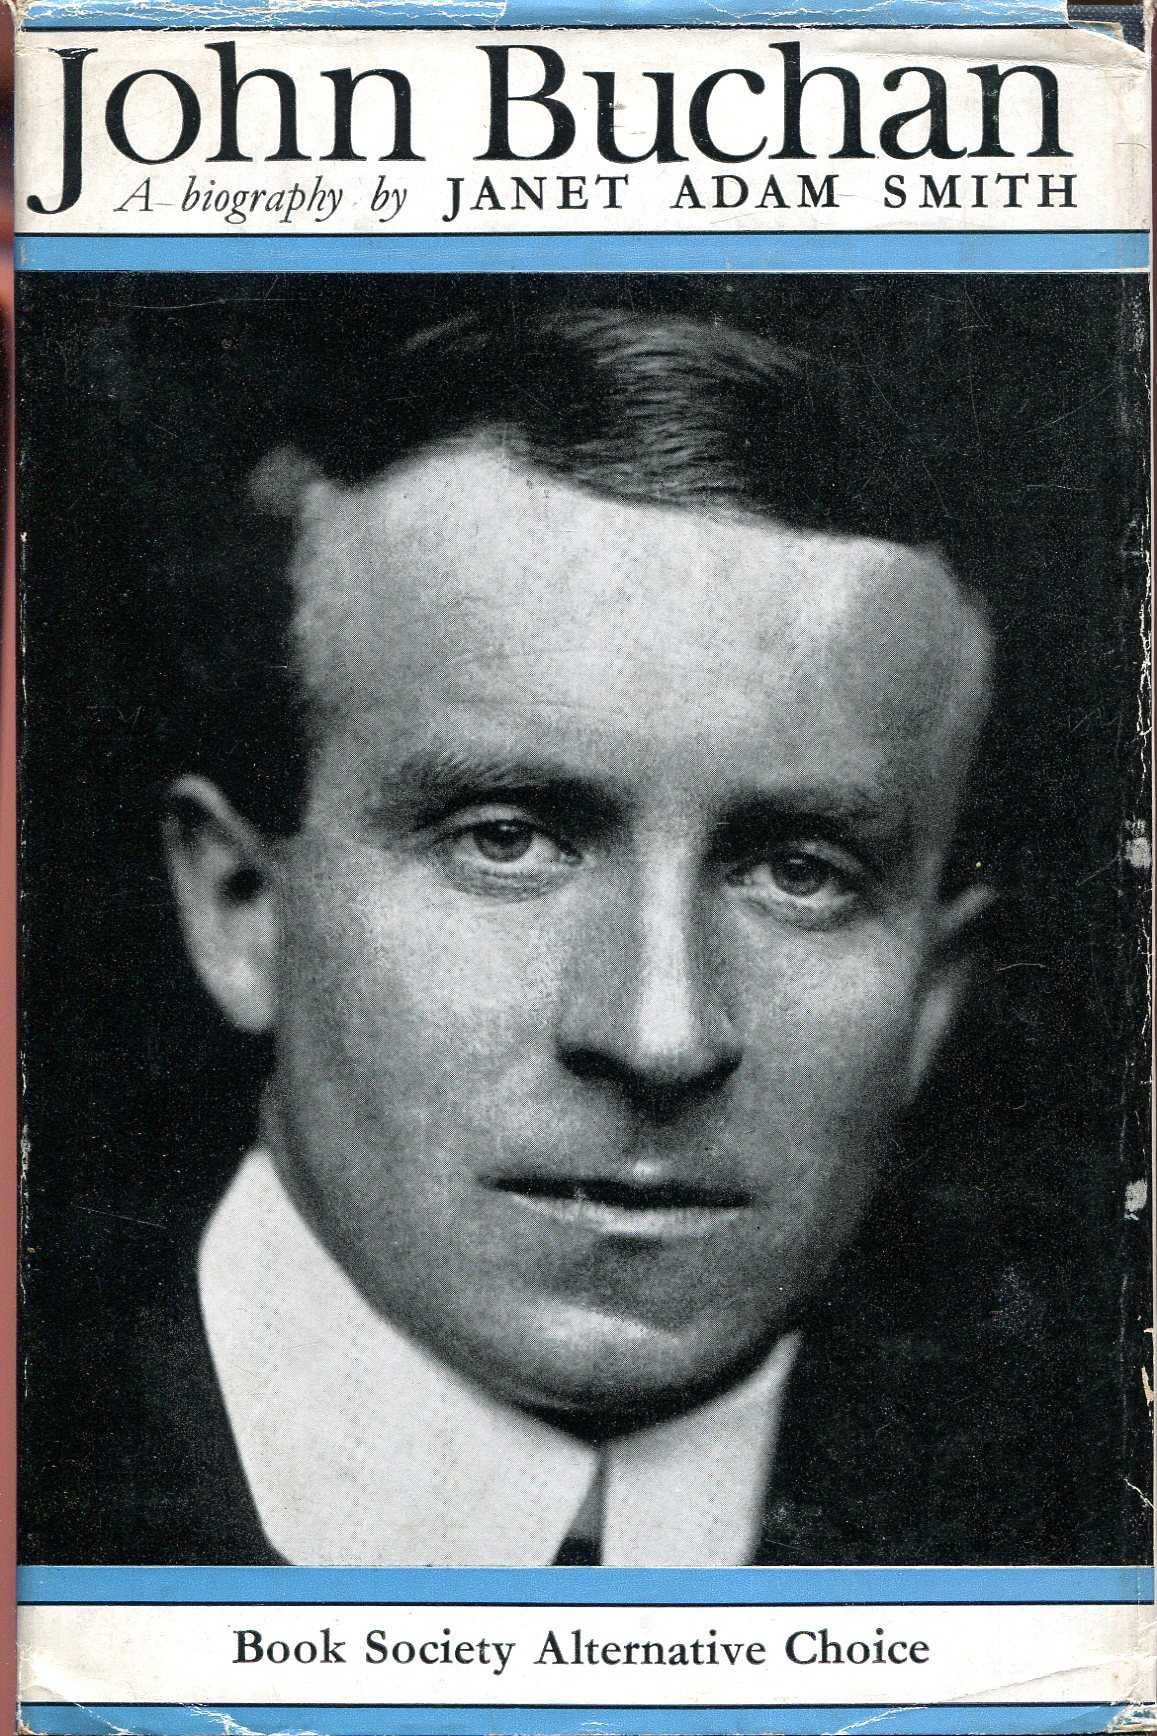 Image for John Buchan, a biography